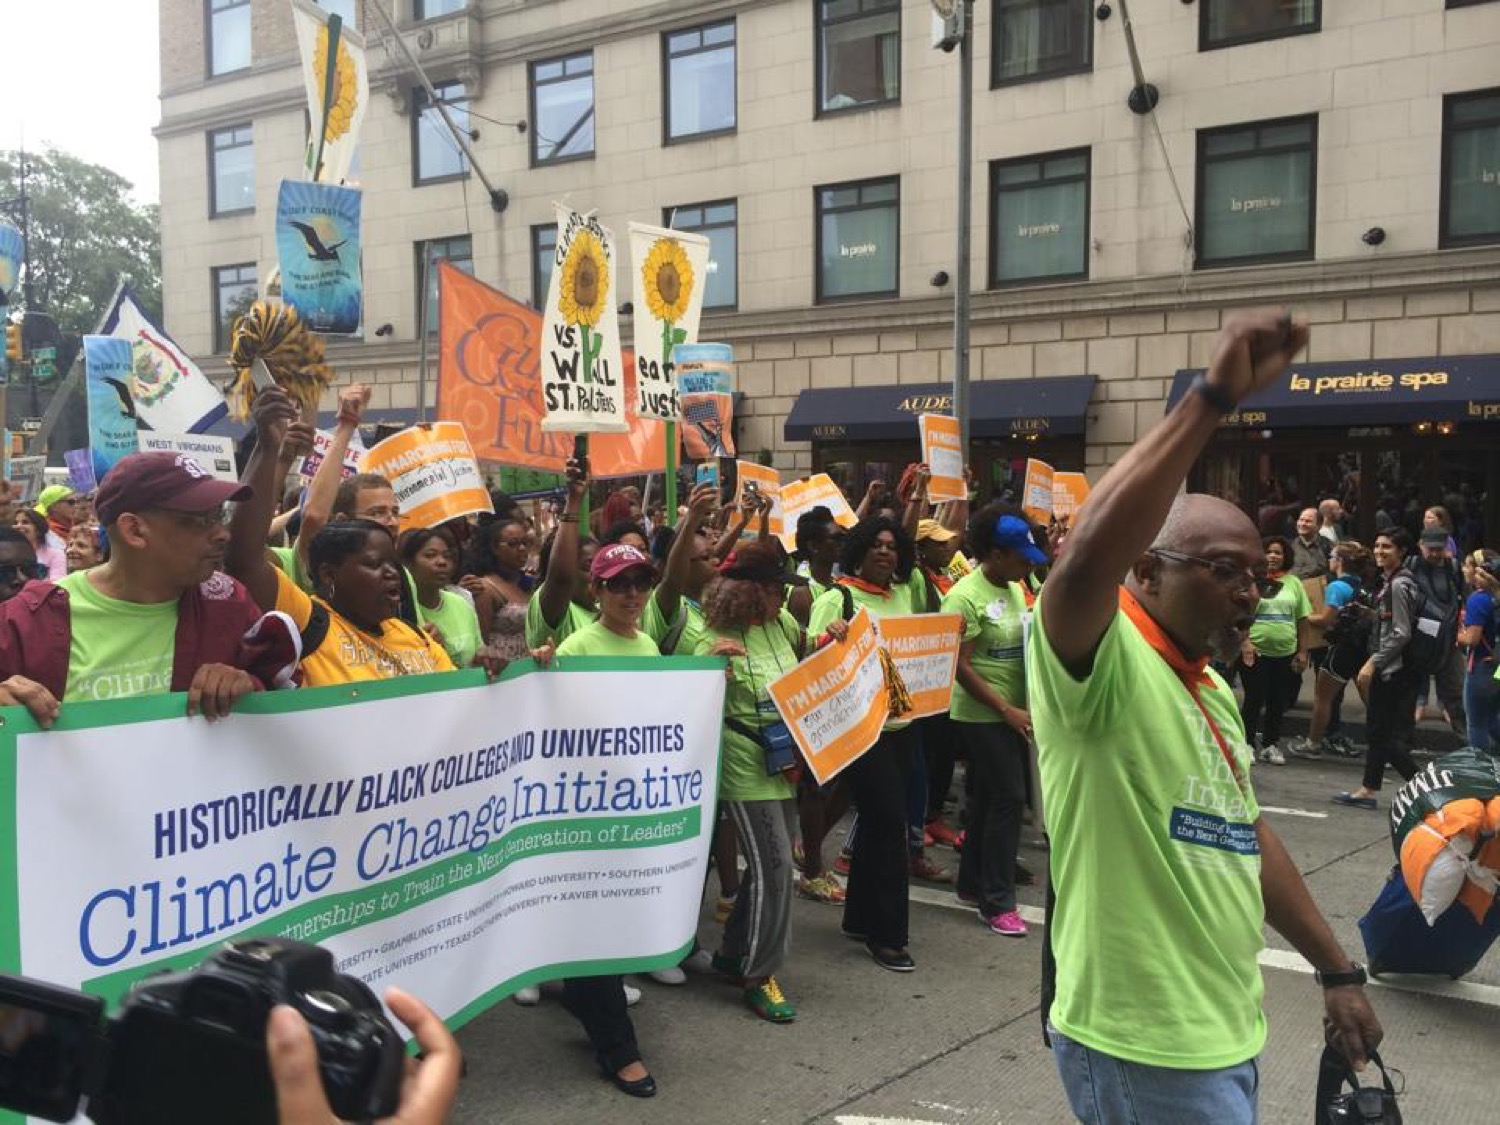 a group of black people coming together to march in a protest against climate change. their hands are raised in the air and they hold a banner that reads historically black colleges and universities climate change initiative